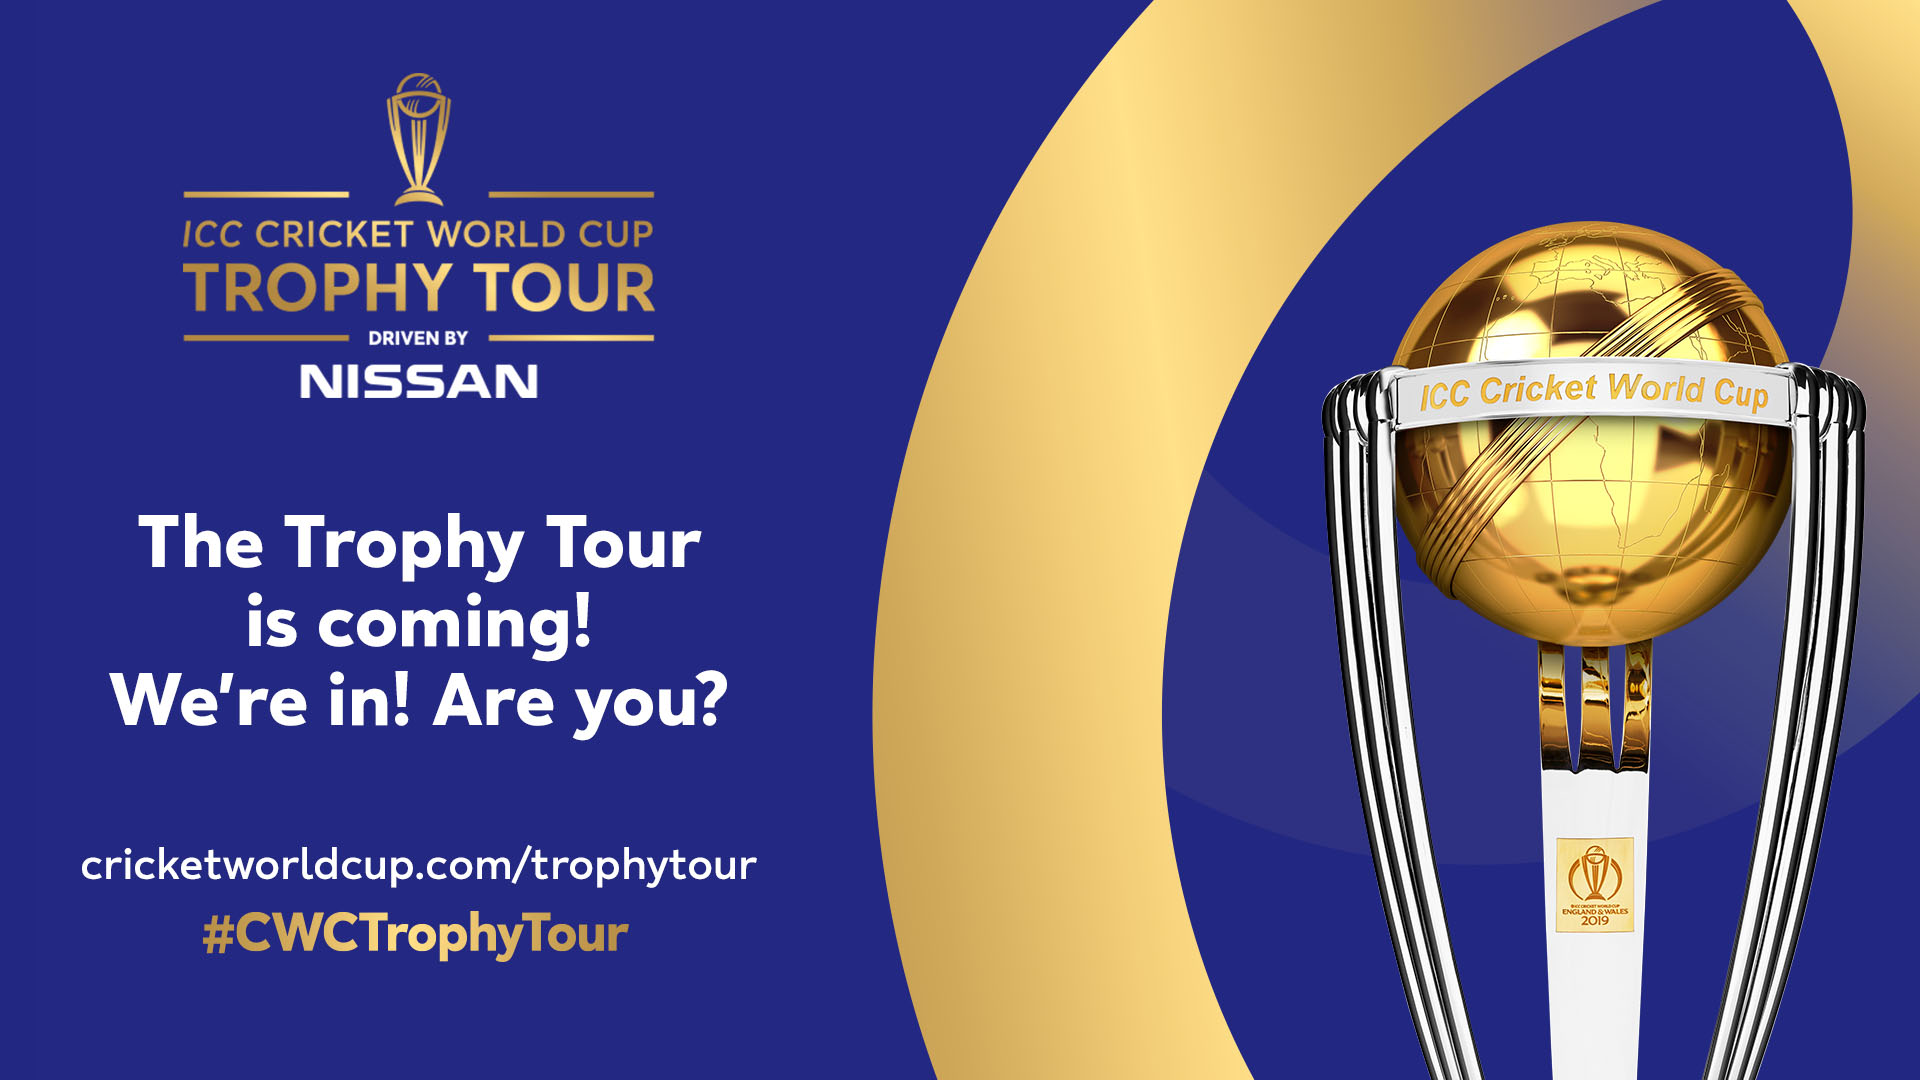 2019-01/1548429033_trophy-tour-twitter-post-short